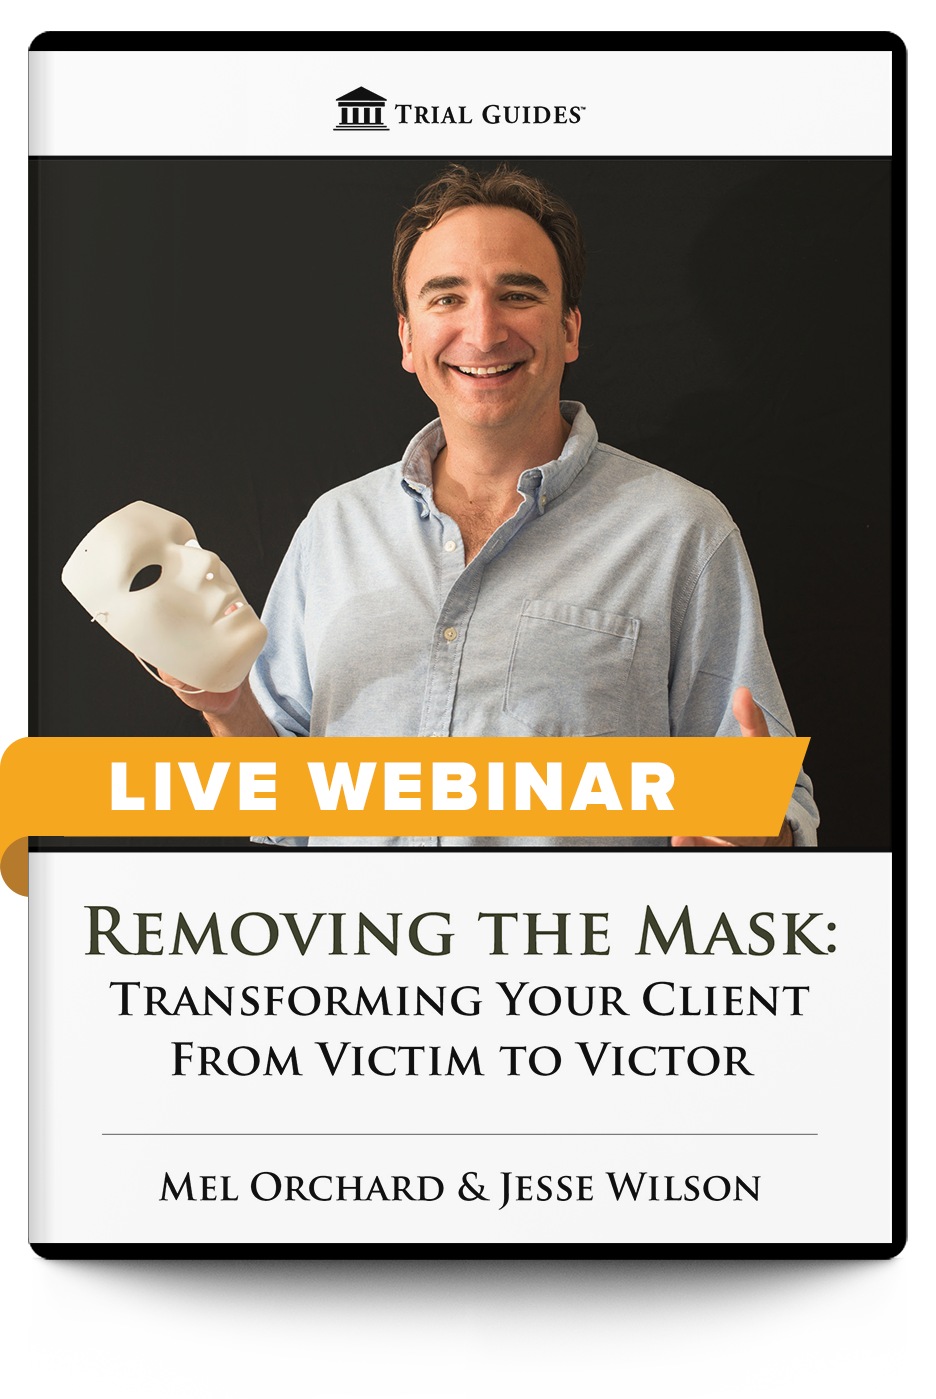 Removing the Mask: Transforming Your Client From Victim to Victor - Live Webinar